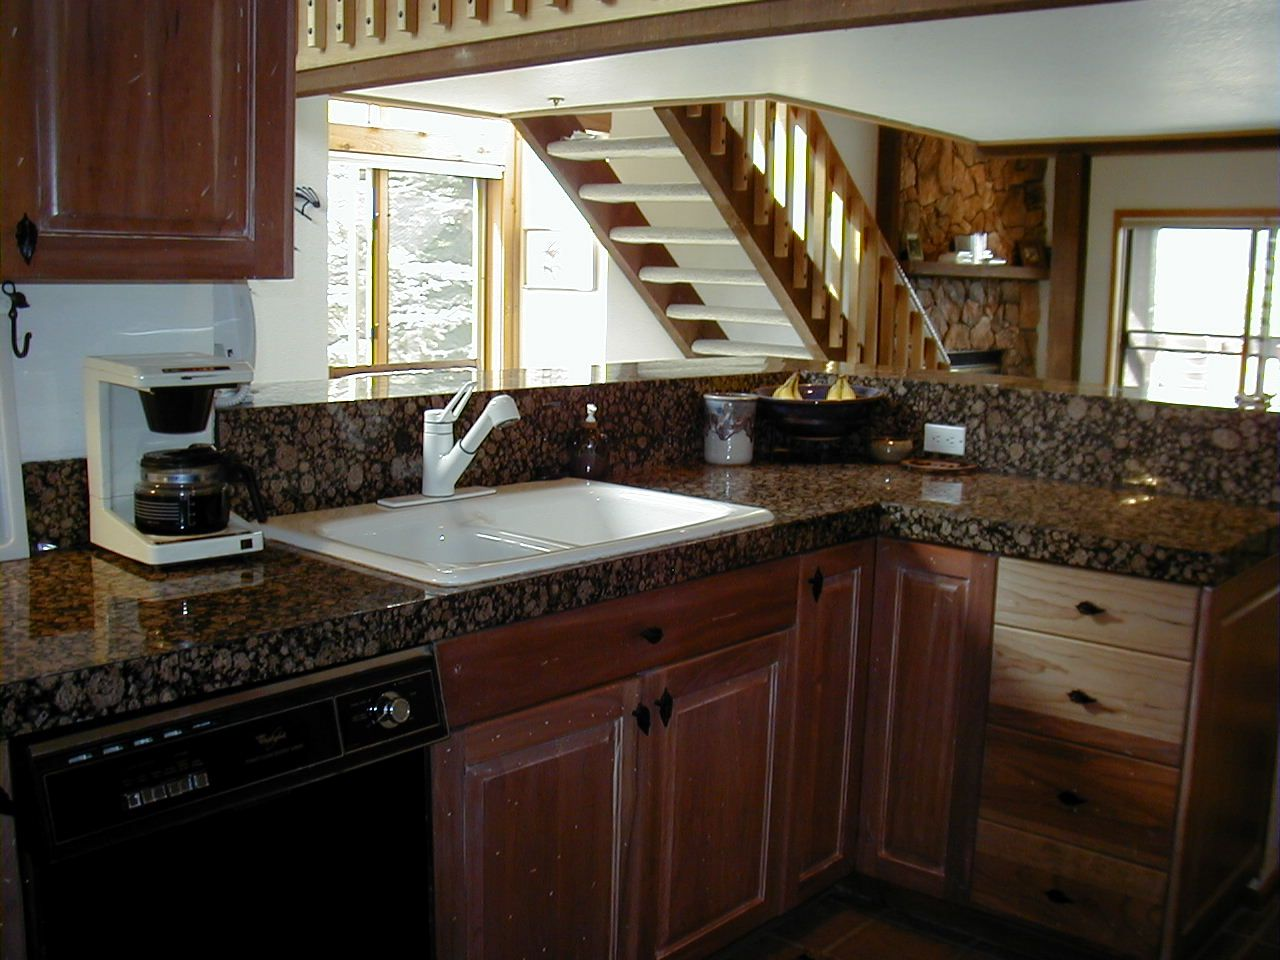 17 best images about kitchen , etc on pinterest | countertops